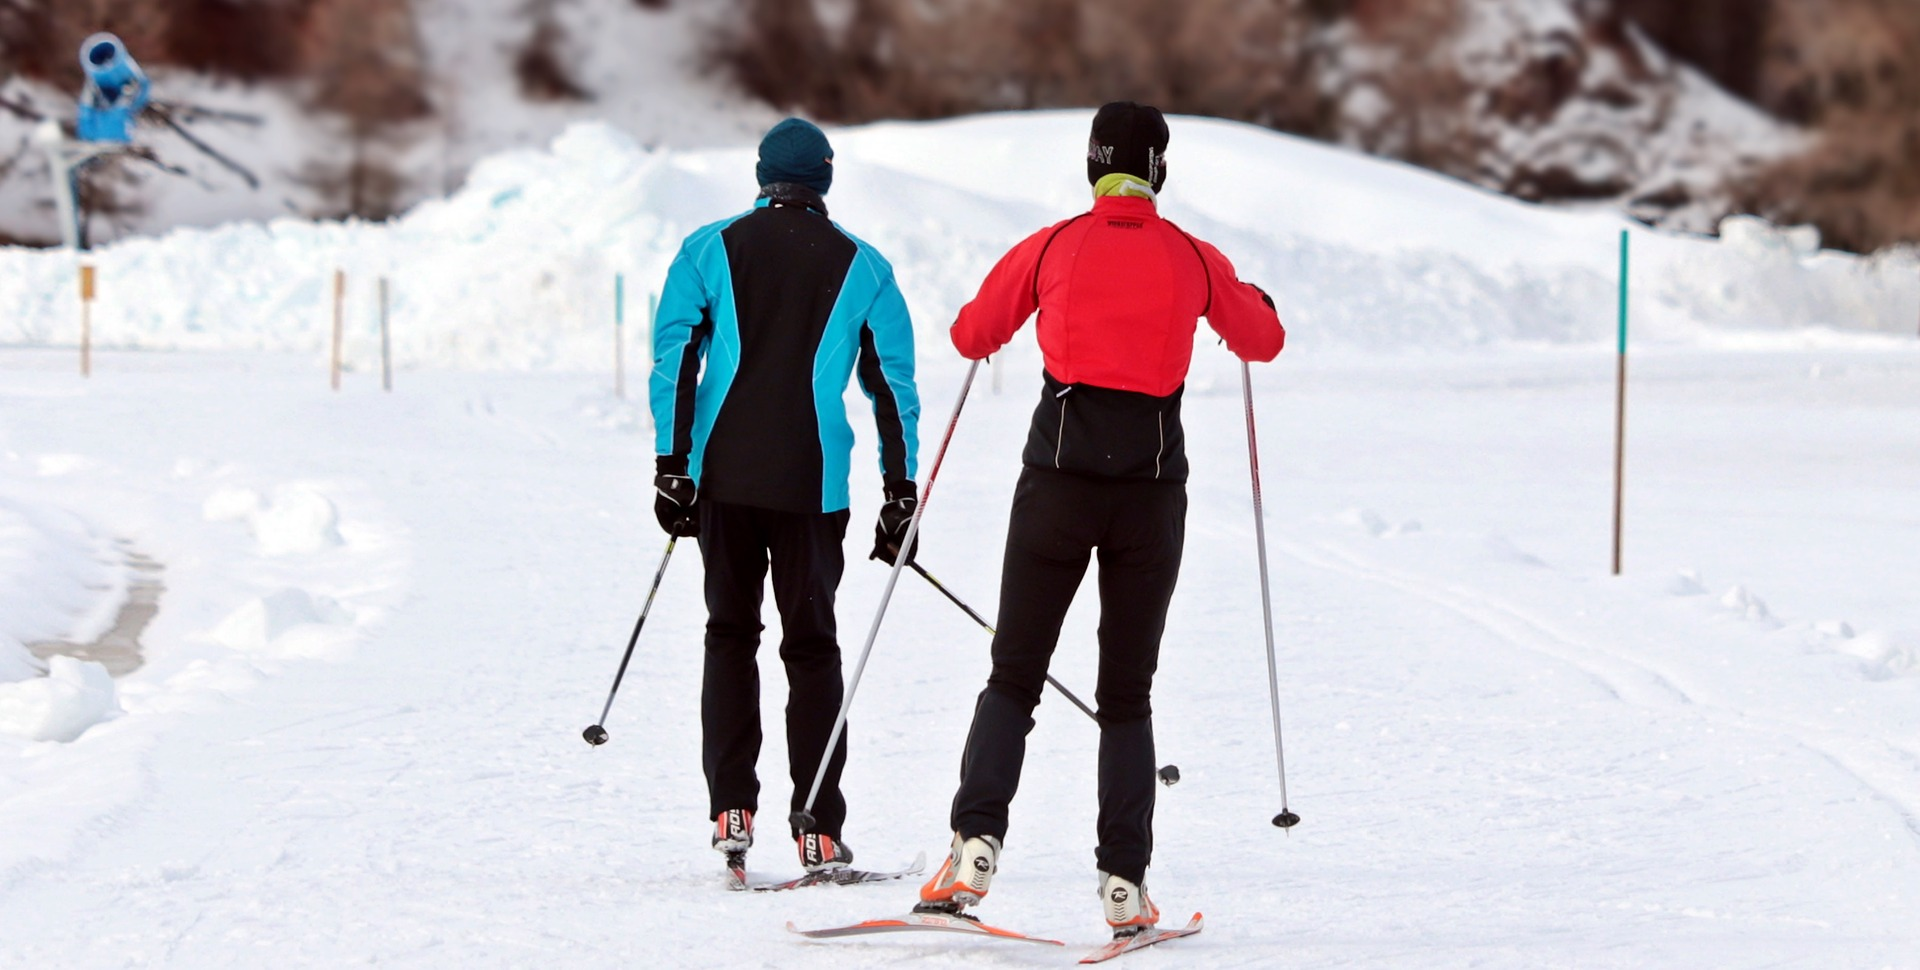 Skiing the Race of Faith